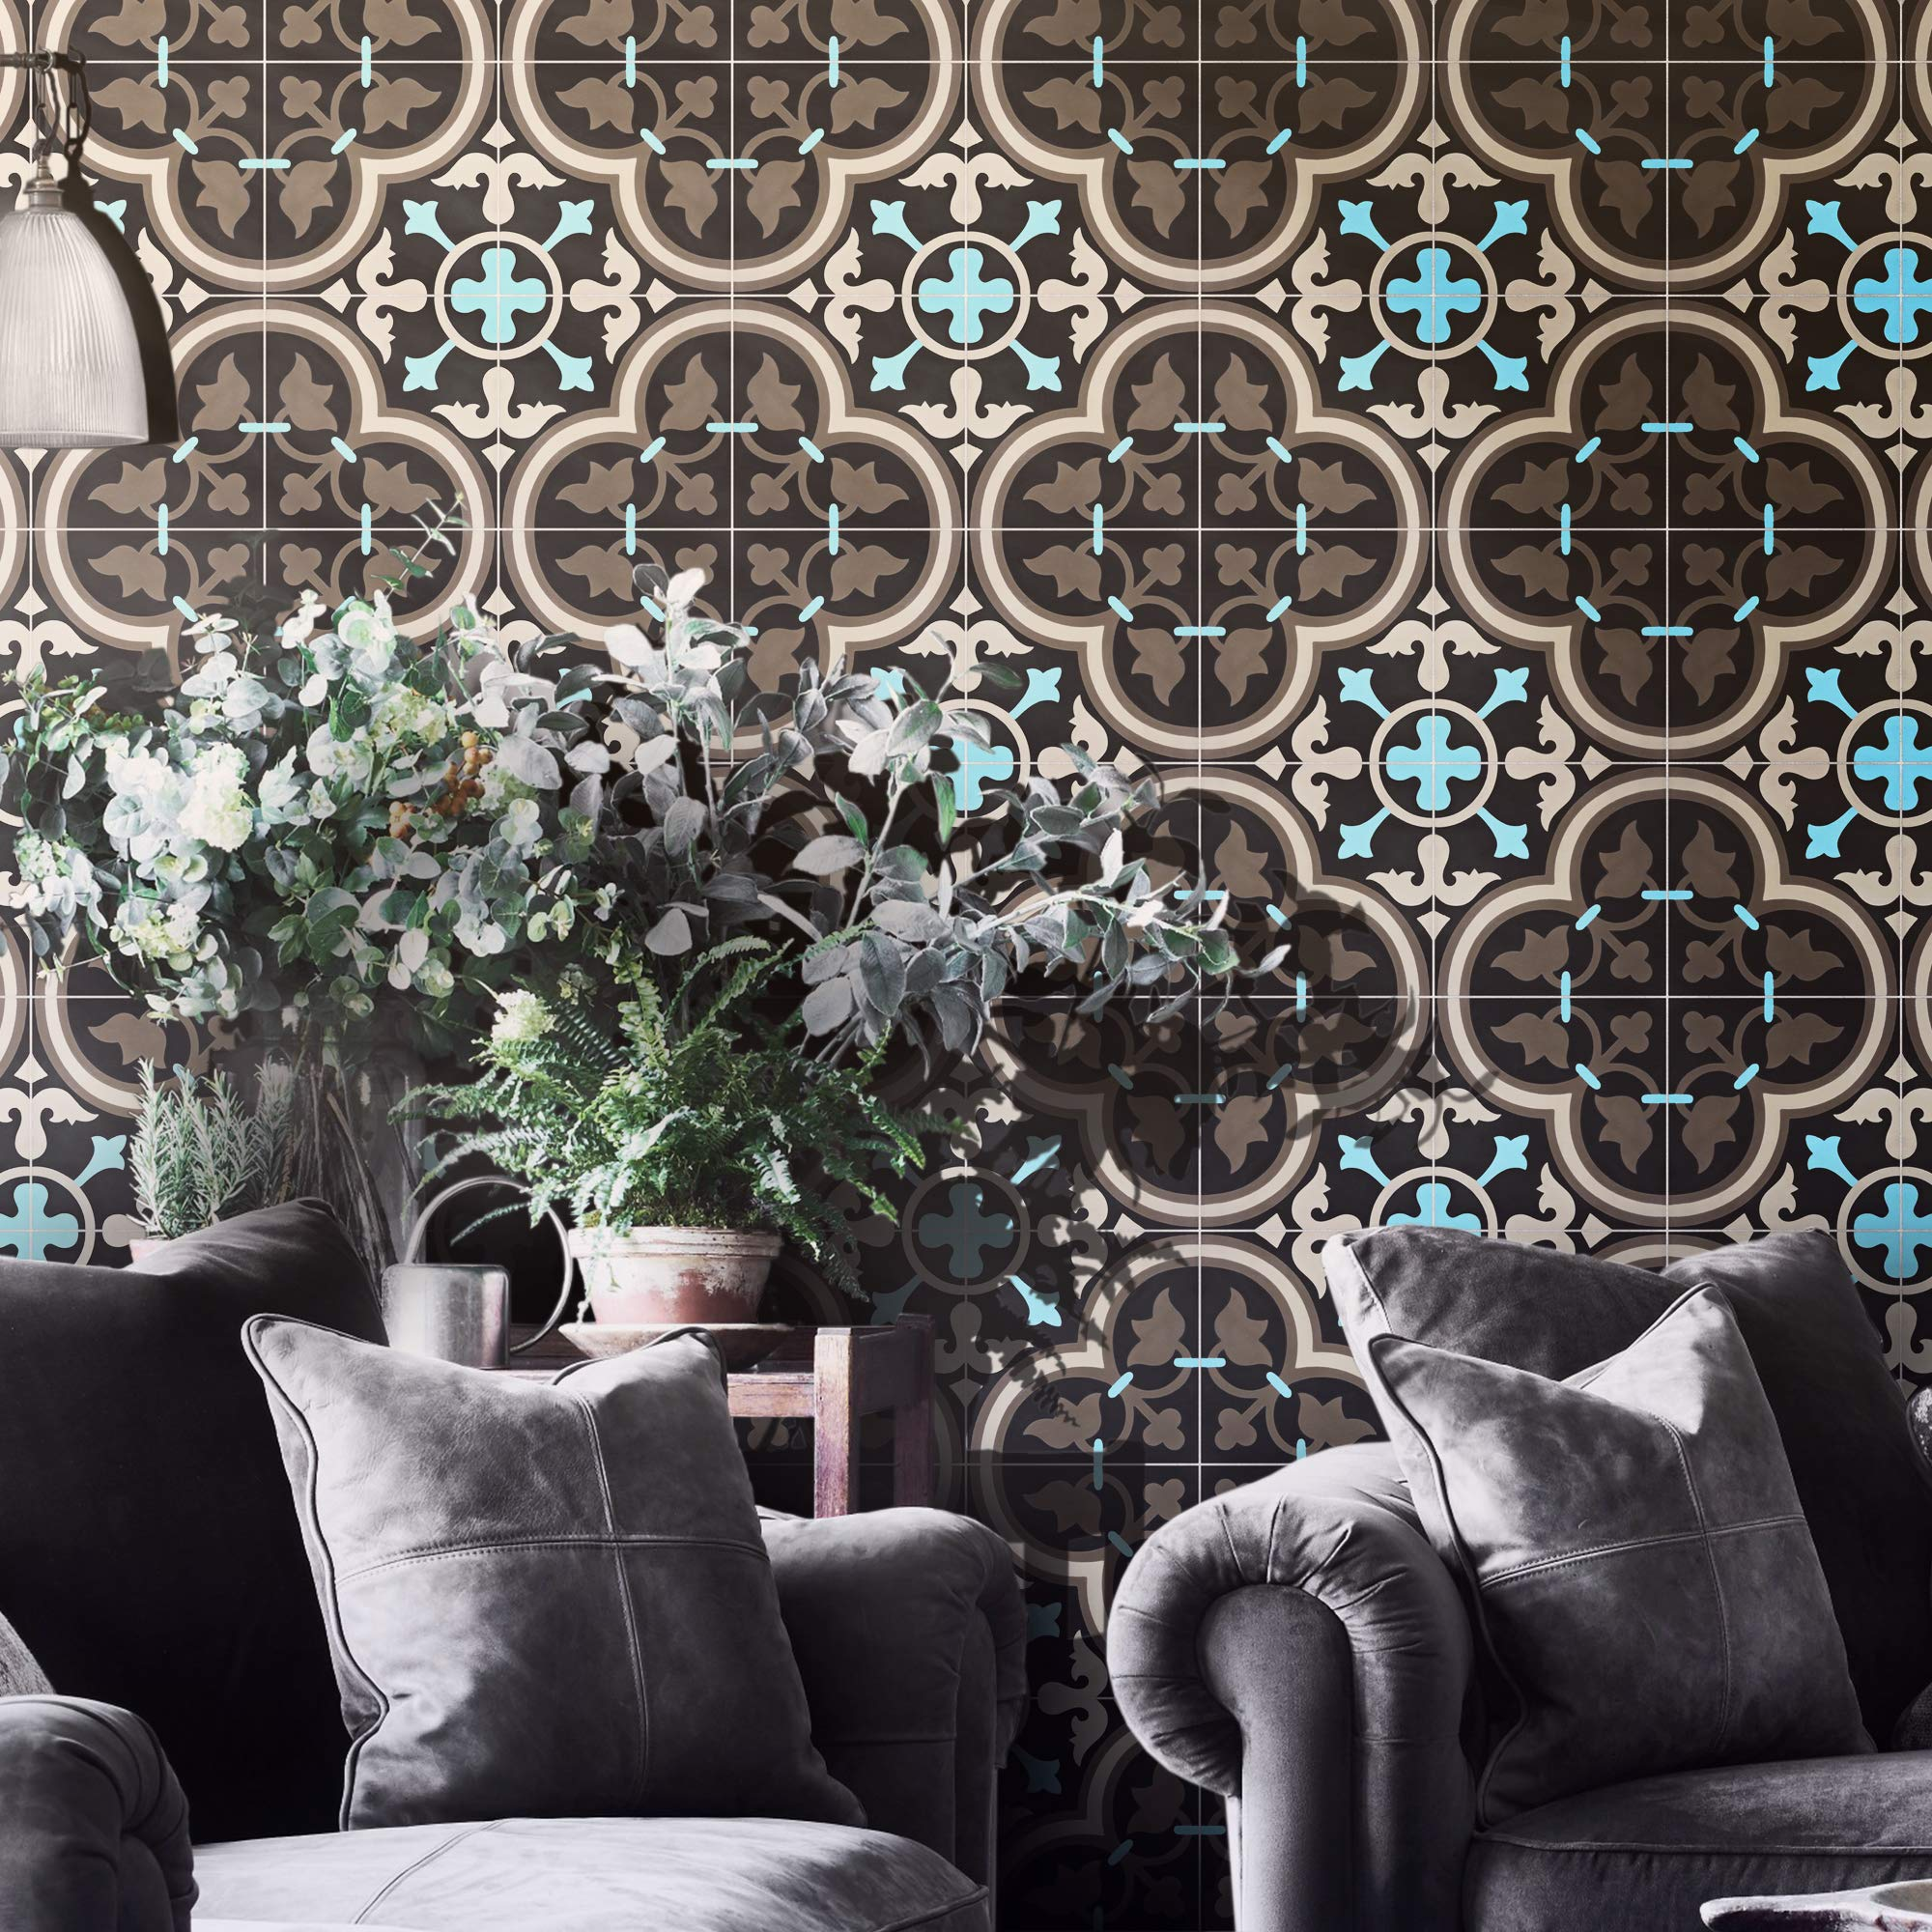 Moroccan Mosaic & Tile House CTP33-05 Casa Handmade Cement Tile, 8''X8'', Brown/Black/Blue